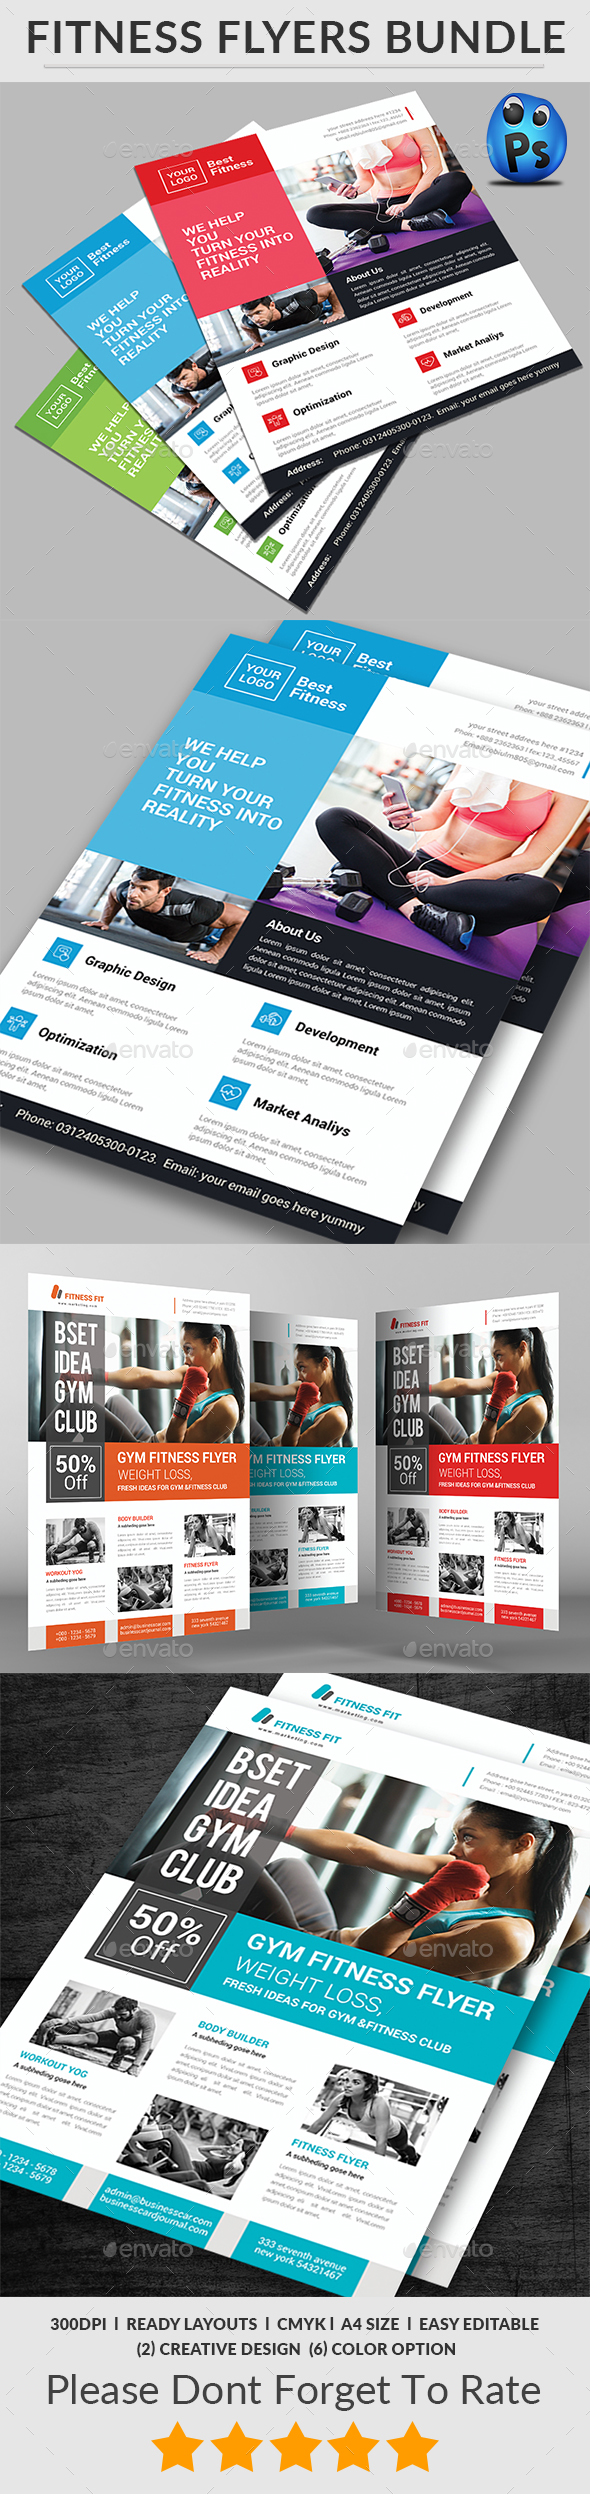 Fitness Flyers Bundle Print Templates - Corporate Flyers